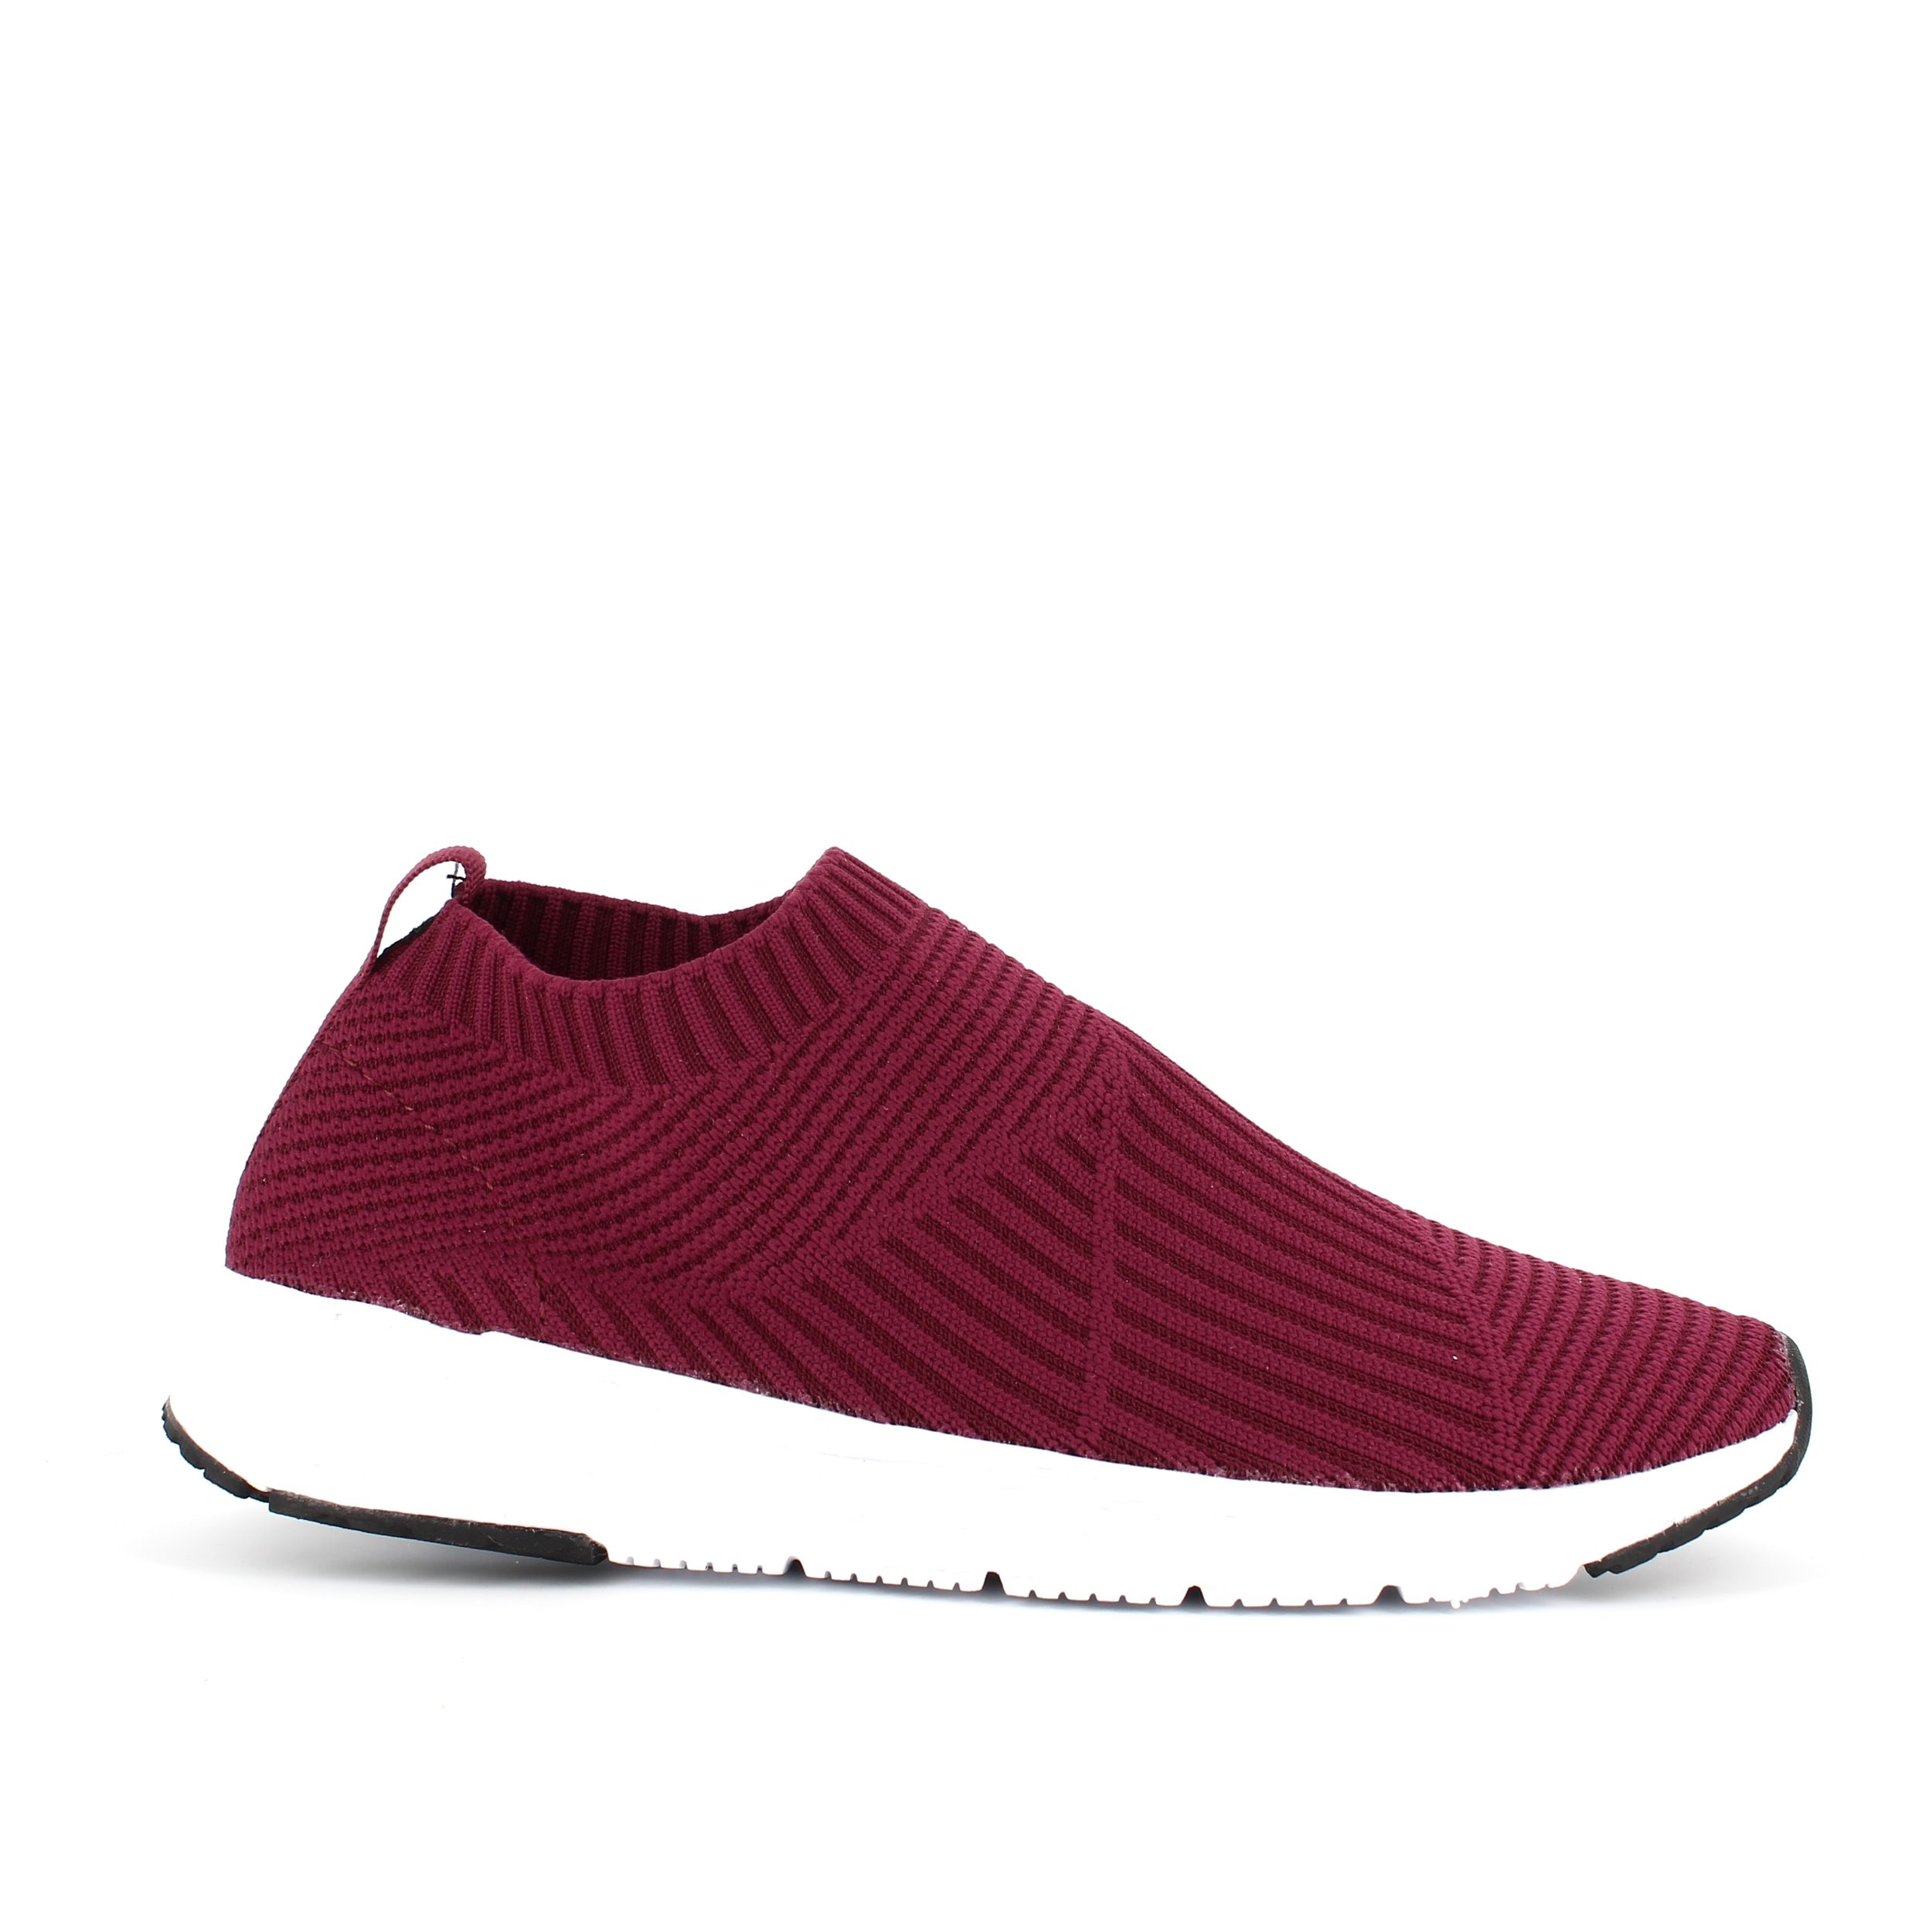 Image of   Bordeaux strikket slip in sneakers - god til smalle fødder - 38